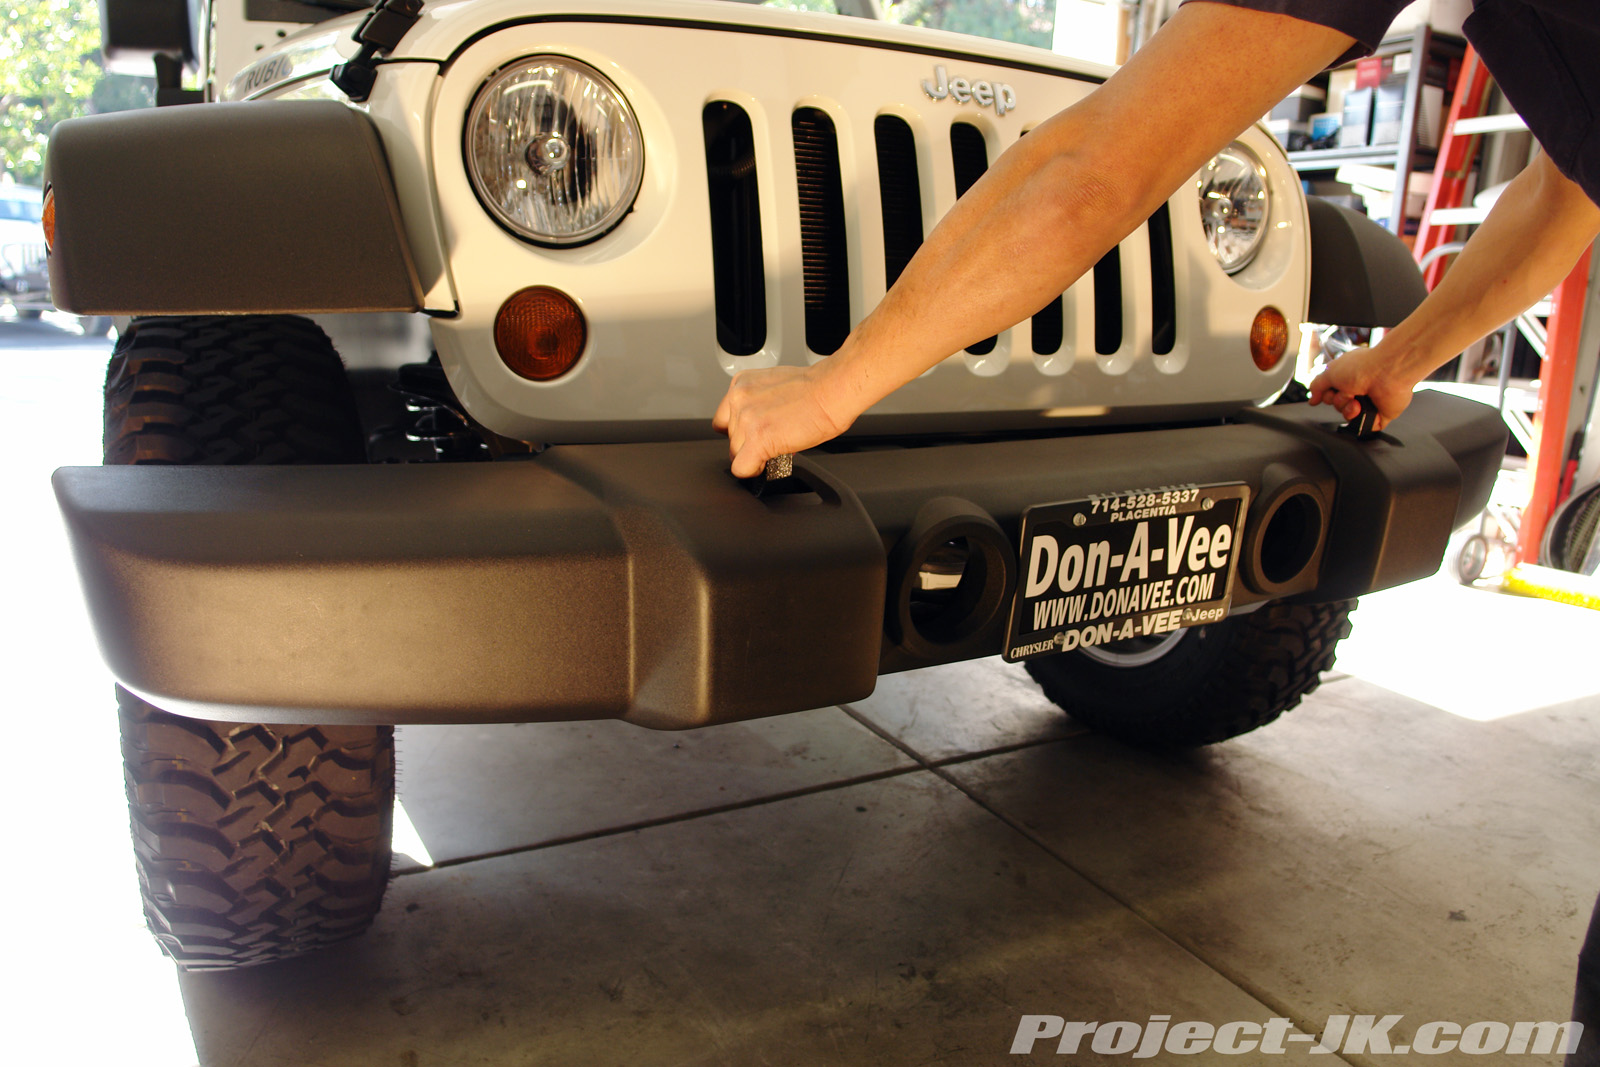 Shrockworks Jeep Jk Wrangler Stubby Front Bumper Installation Write Factory Parts Catalog Carefully Pull Off Your Wranglers The Frame Rails If Came Equipped With Tow Hooks Grab And Use Both Of Them To